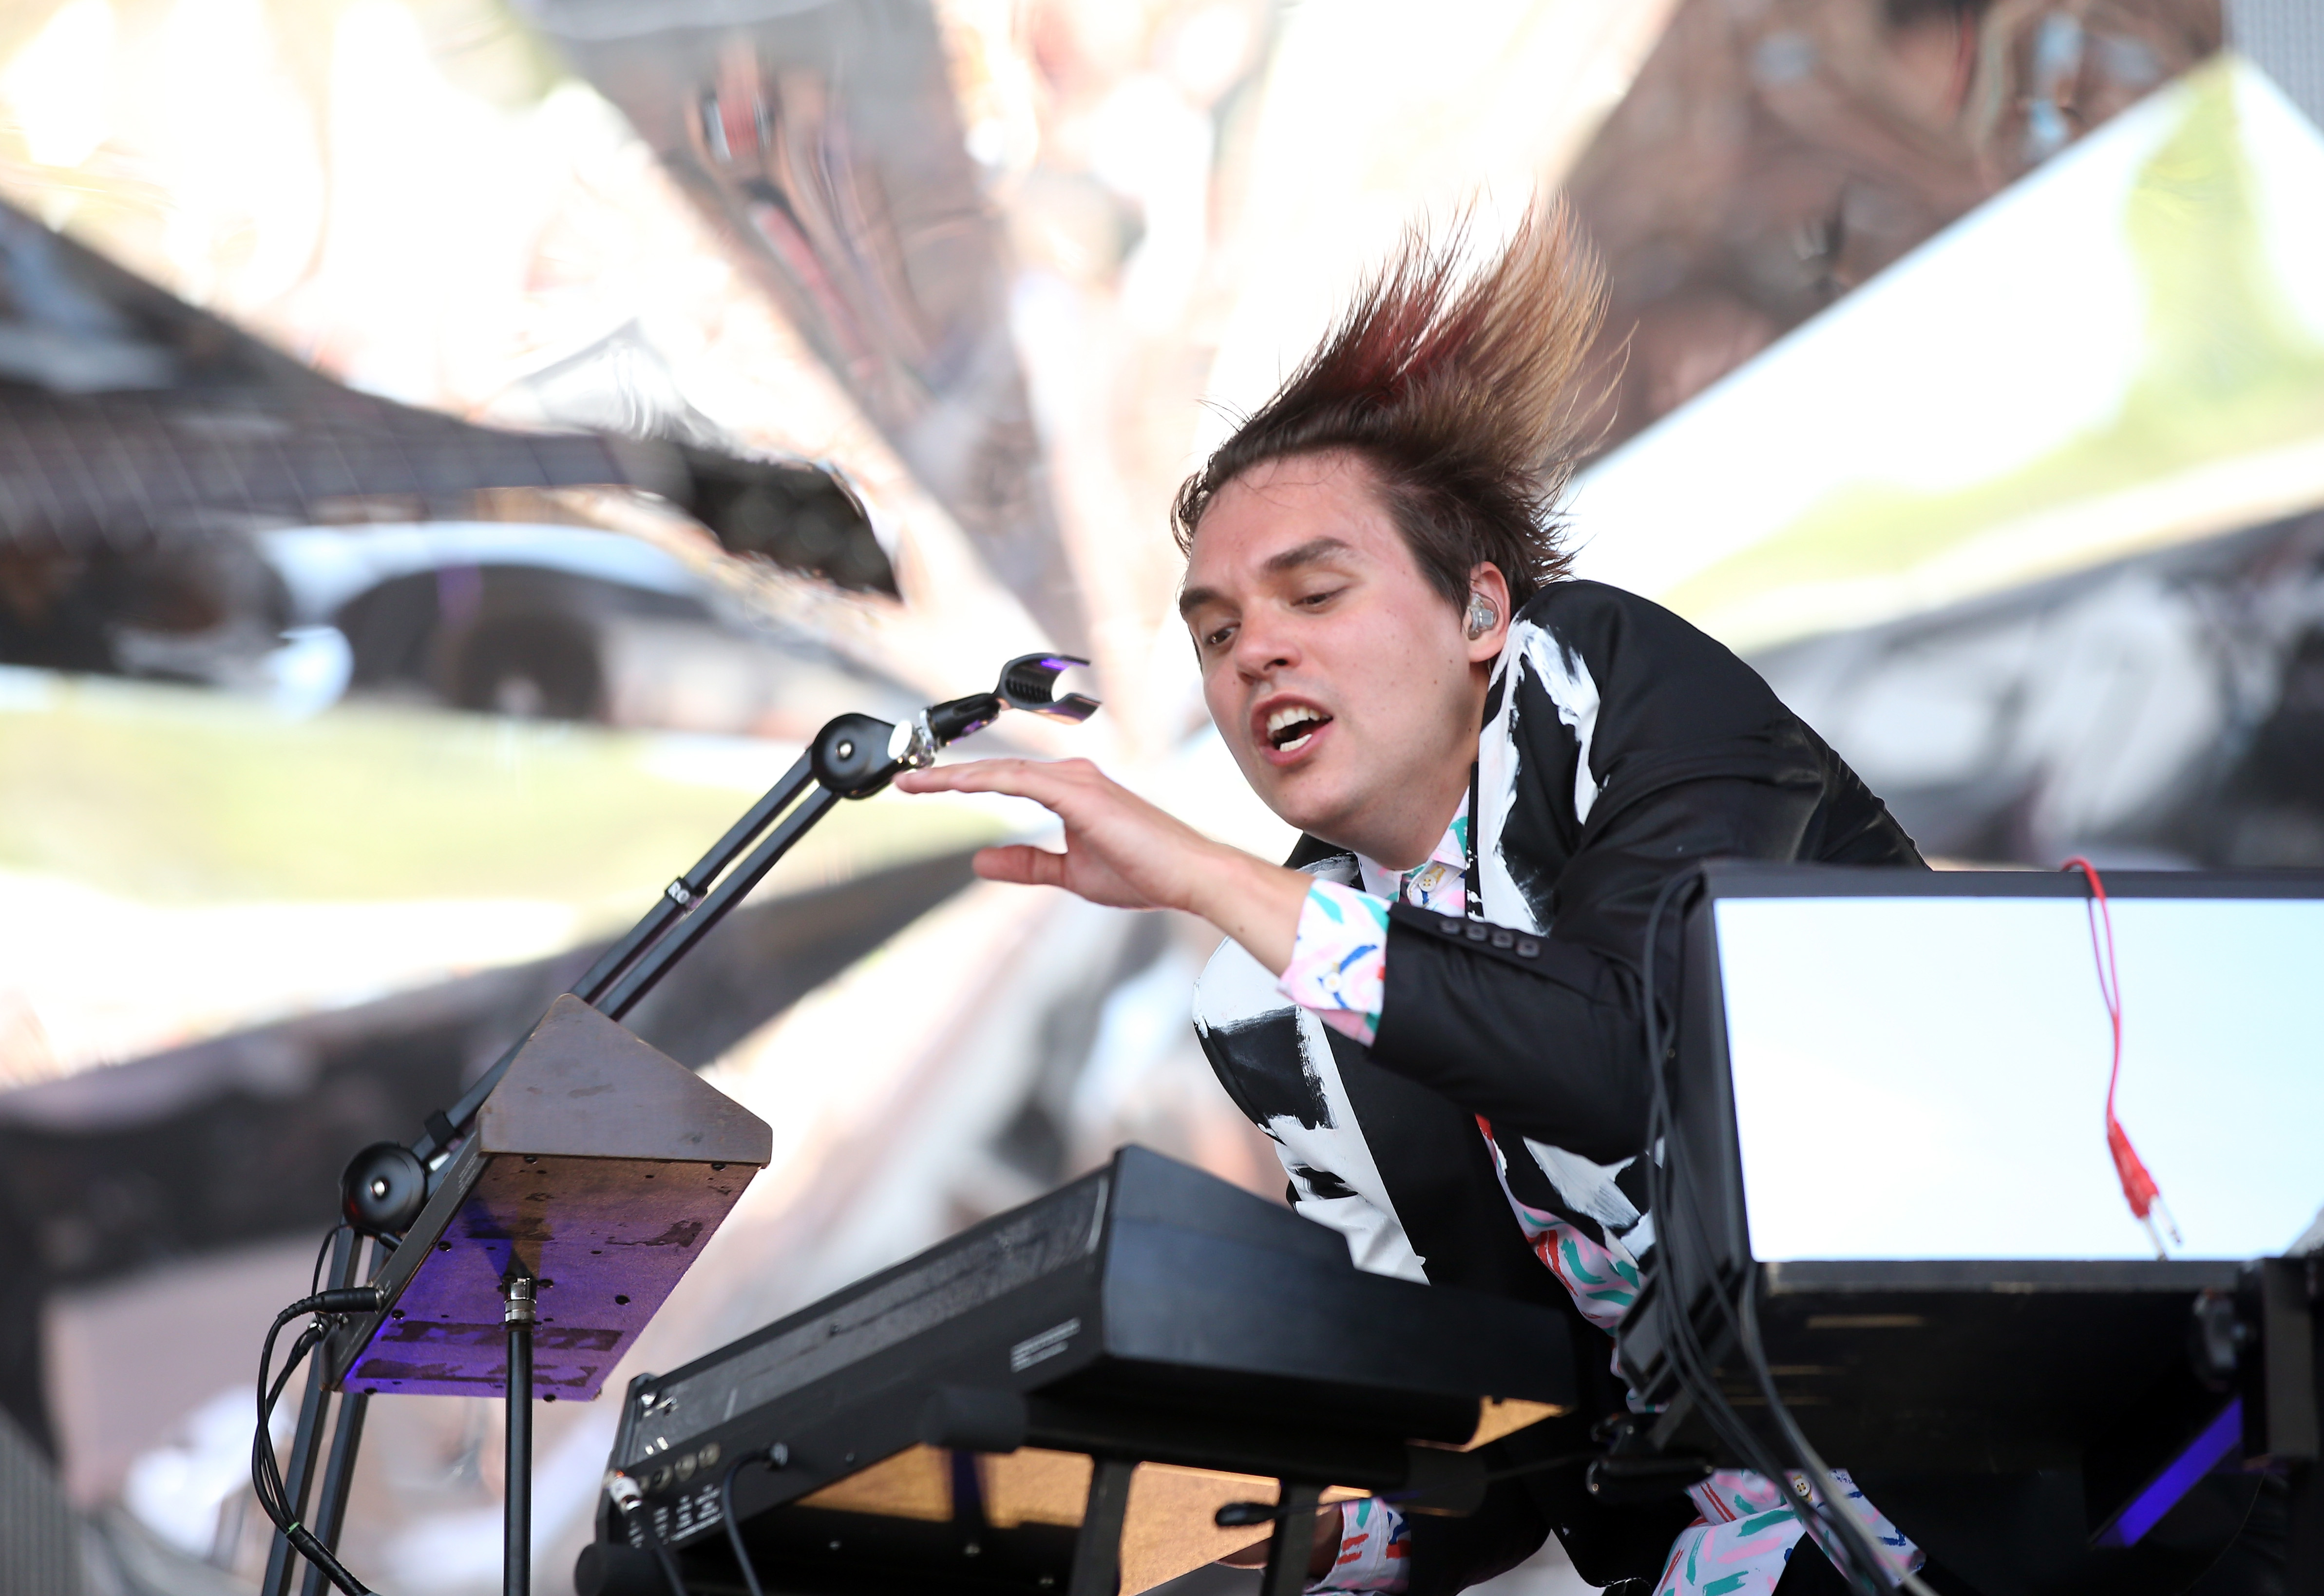 AUCKLAND, NEW ZEALAND - JANUARY 17:  William Butler of Arcade Fire performs live for fans during the 2014 Big Day Out Festiva